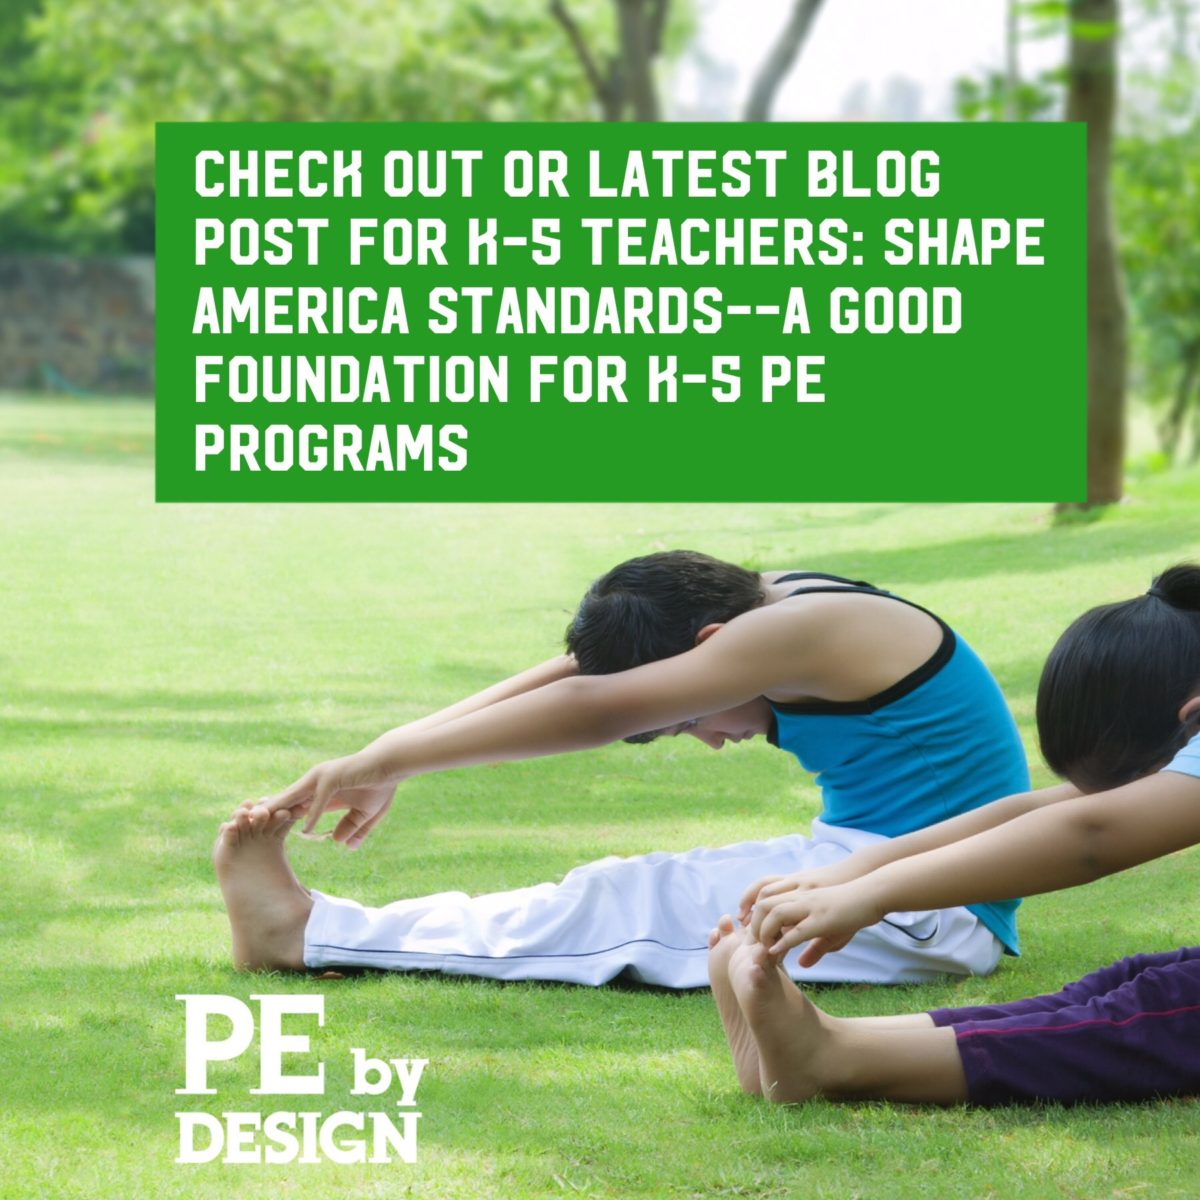 SHAPE America Standards—A Good Foundation for K–5 PE Programs